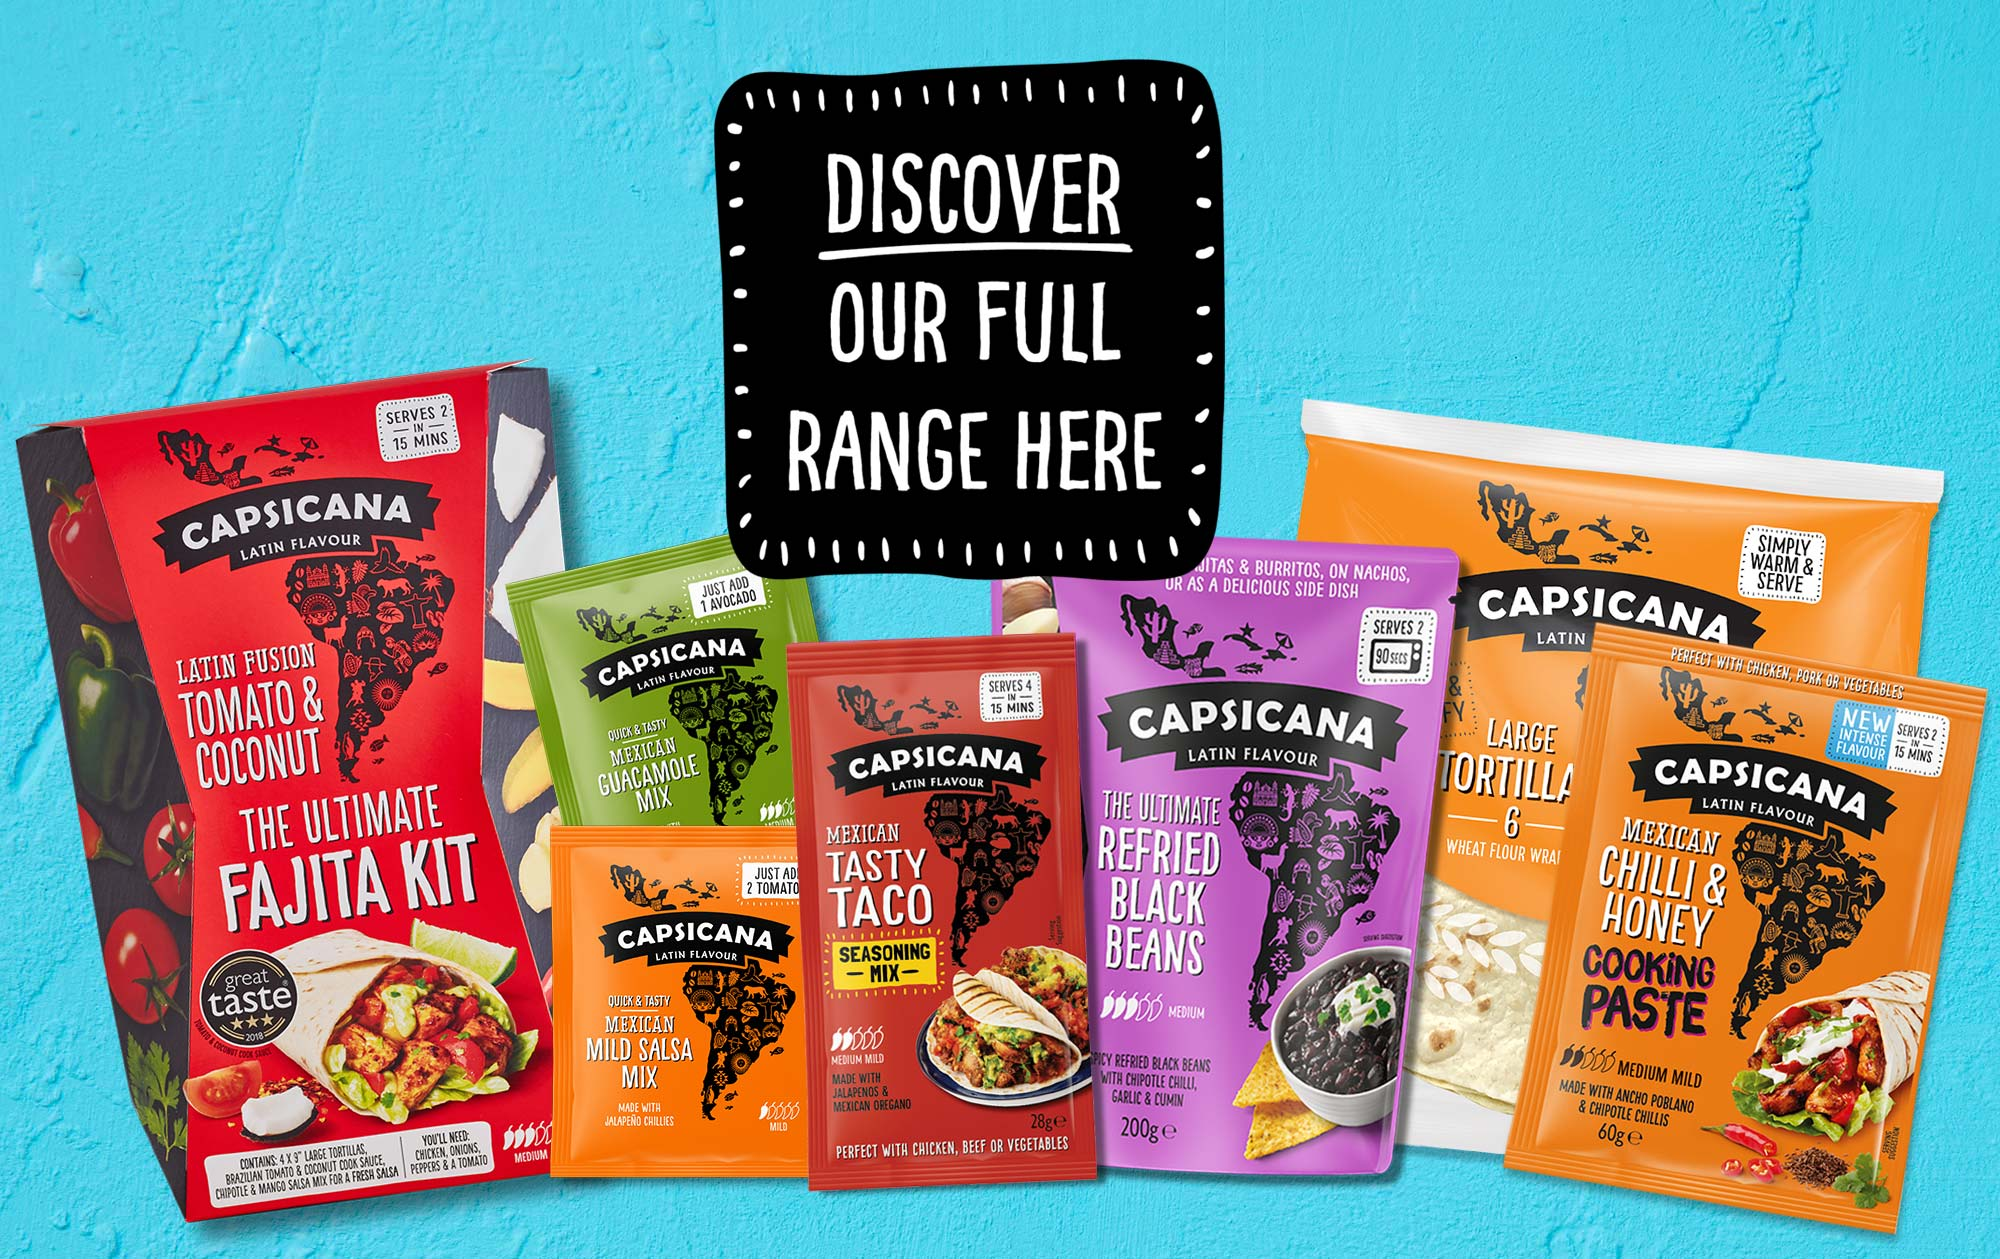 Capsicana Latin American Cook Sauces, Side Dishes & Seasonings